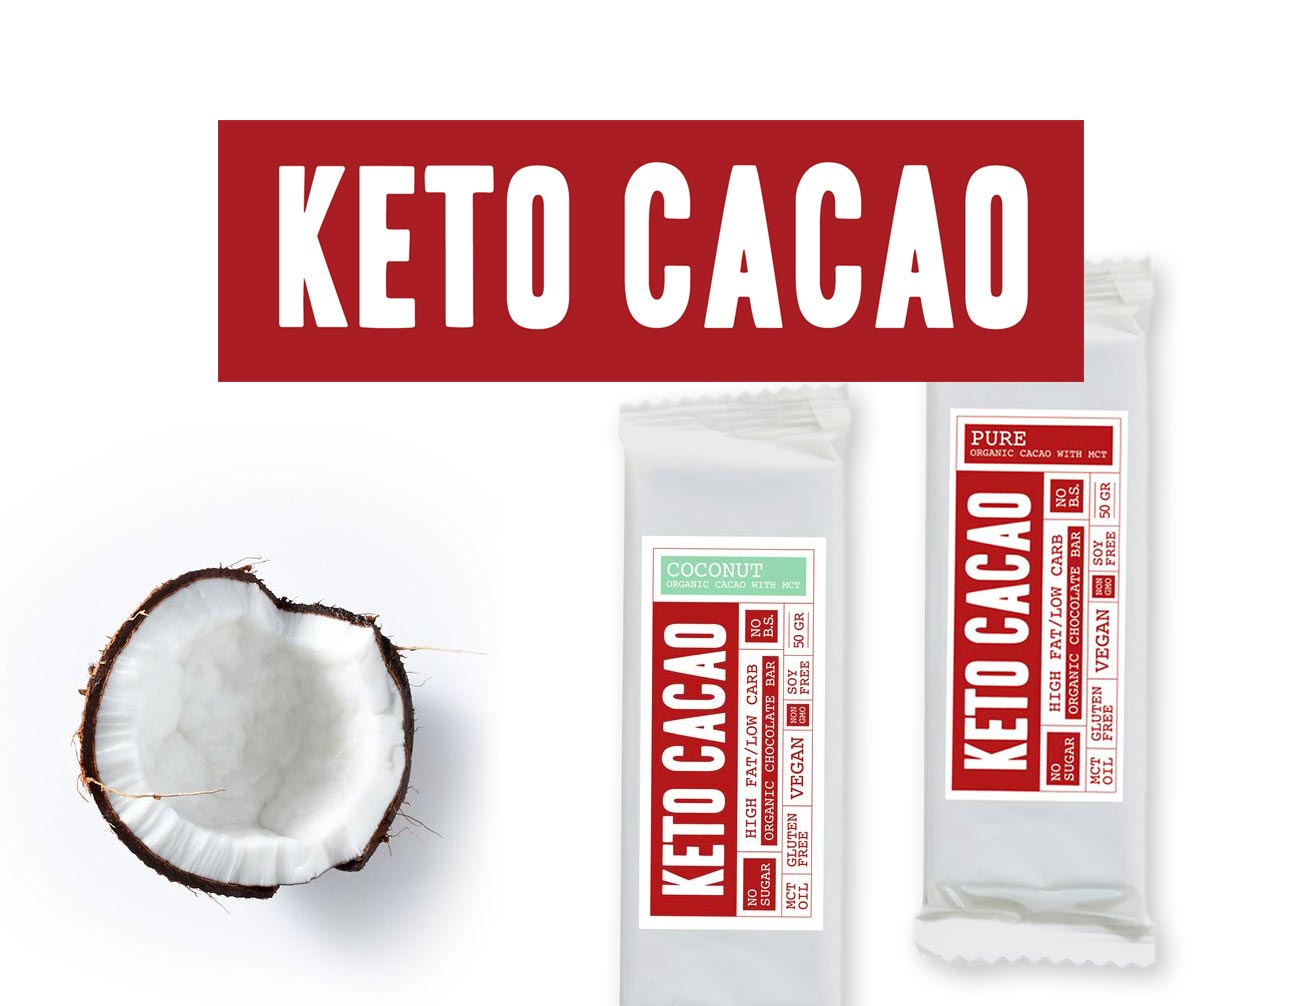 branding and design logo packaging social media artwork chocolate bar cacao coconut pure raw vegan KETO CACAO by Poppyonto